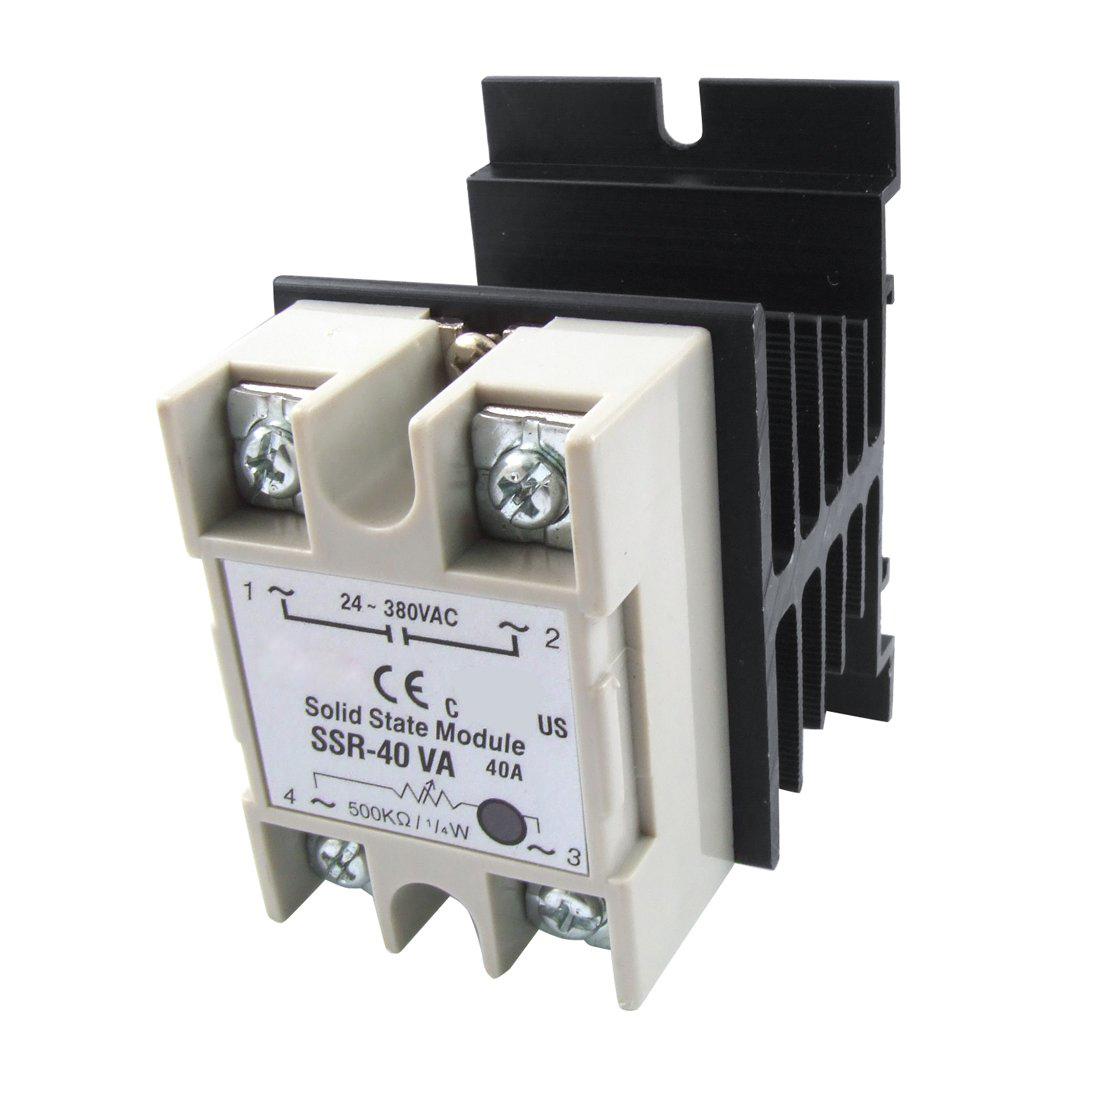 цена на LHLL- VolTage Resistance Regulator Solid State Relay SSR 40A 24-380V AC w Heat SInk